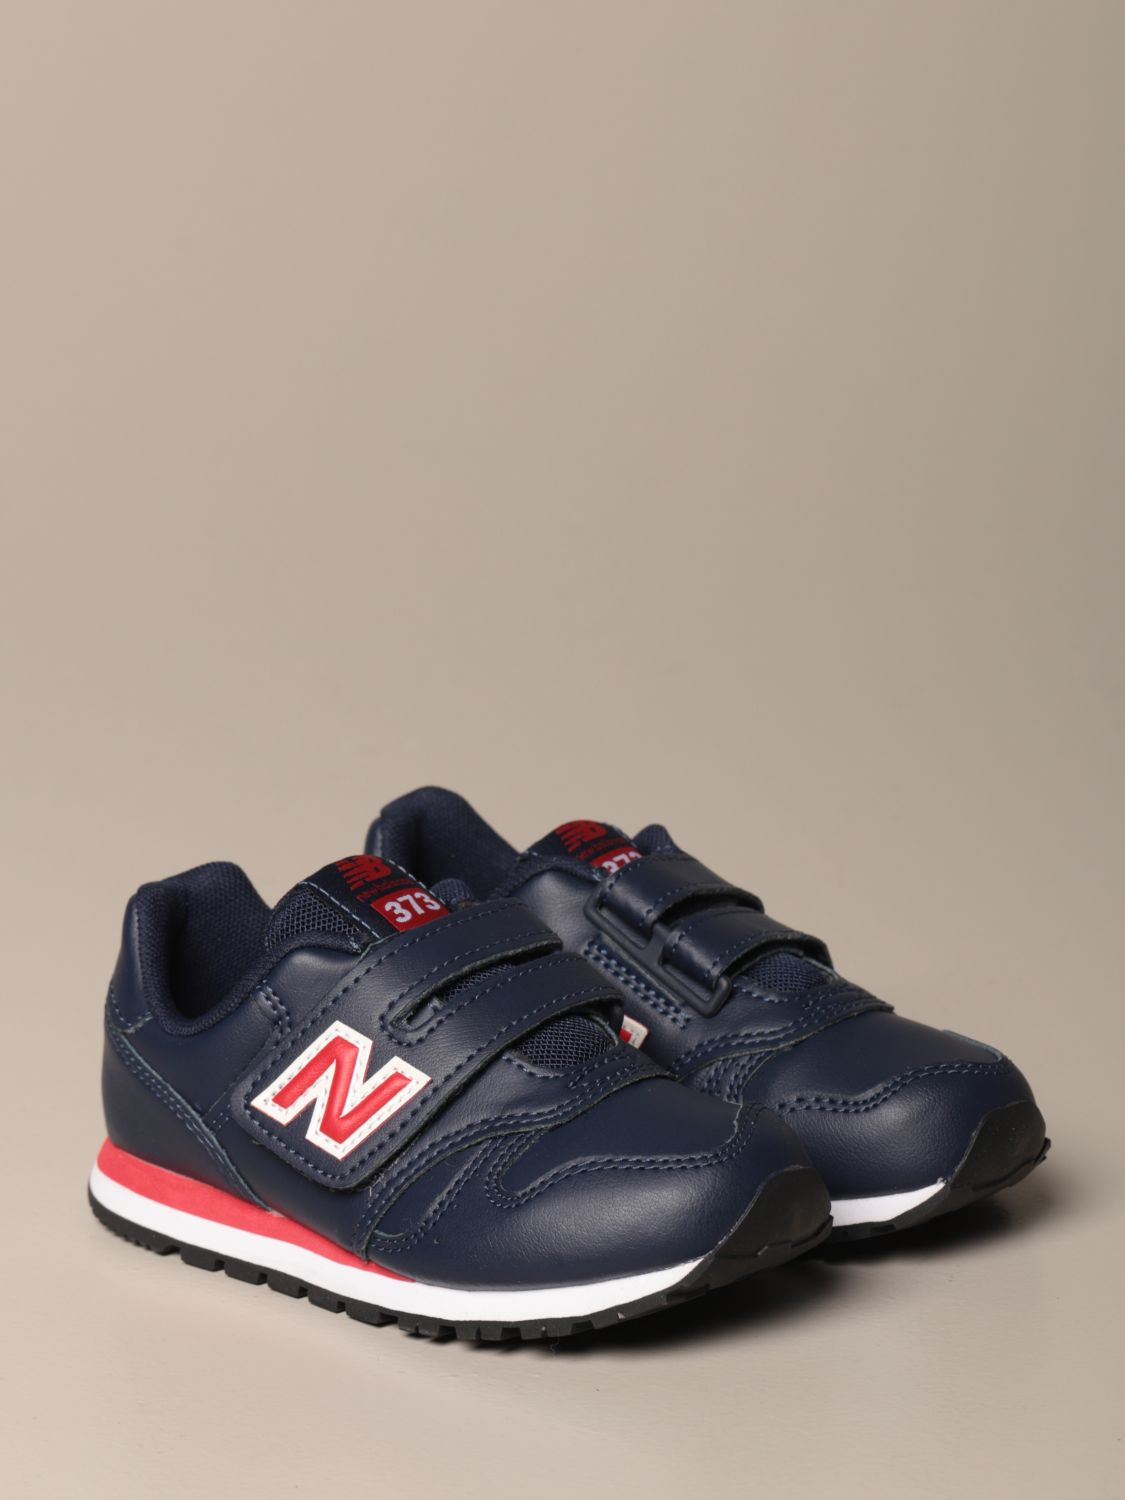 373 New Balance sneakers in synthetic leather